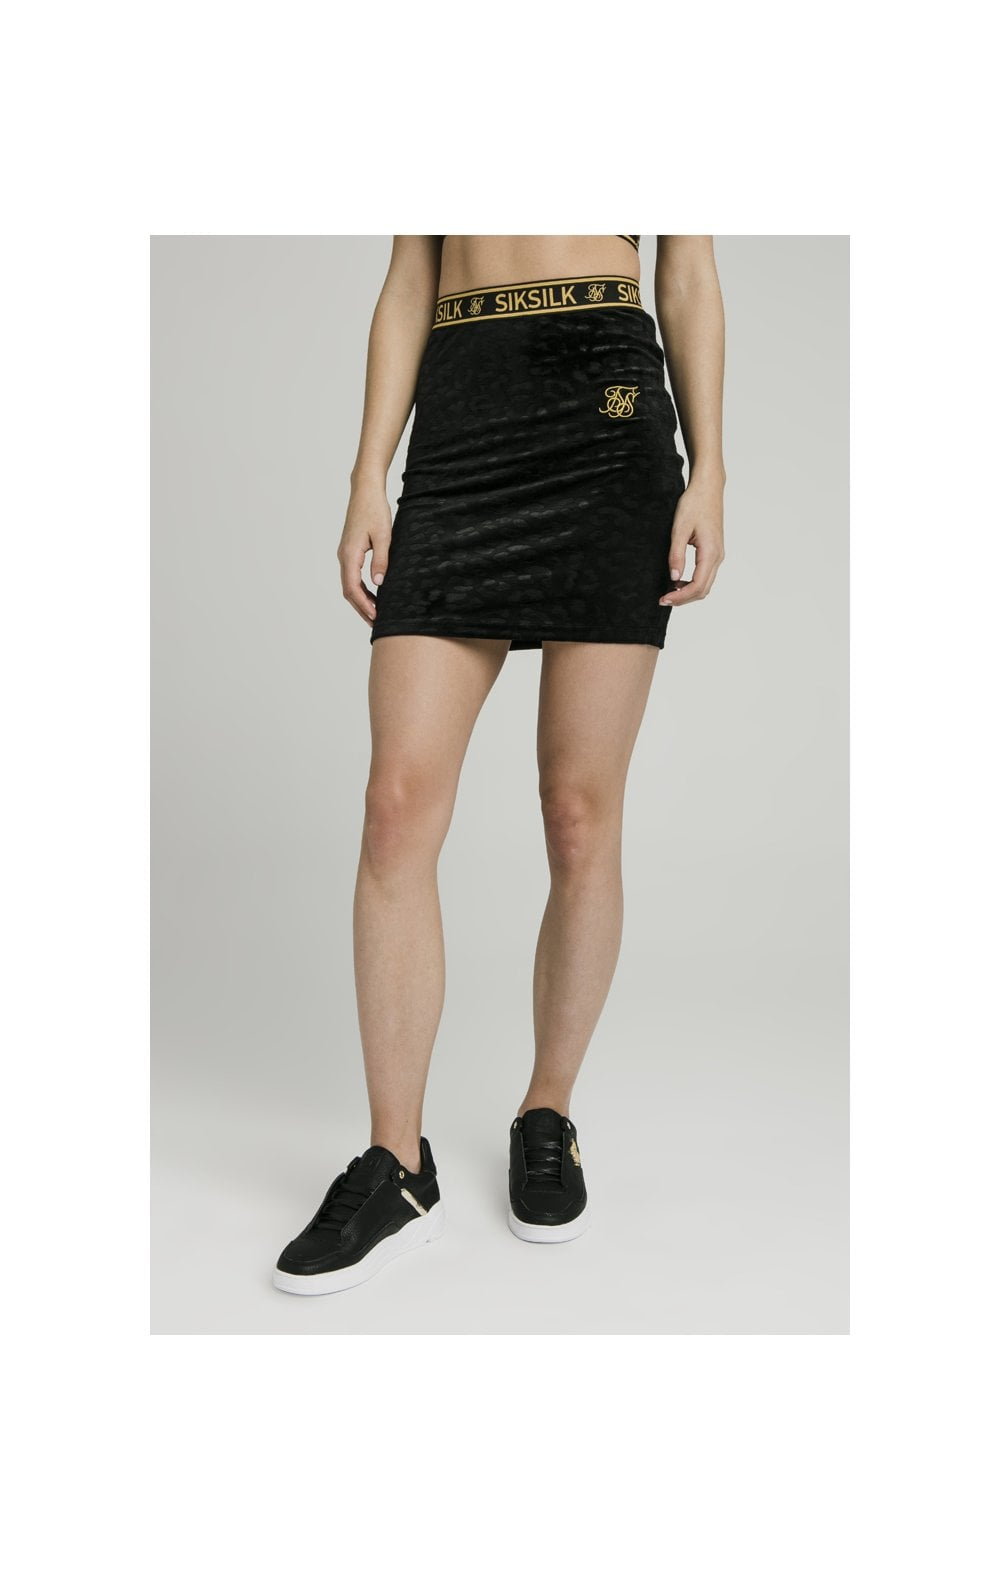 SikSillk Debossed velour Skirt – Black